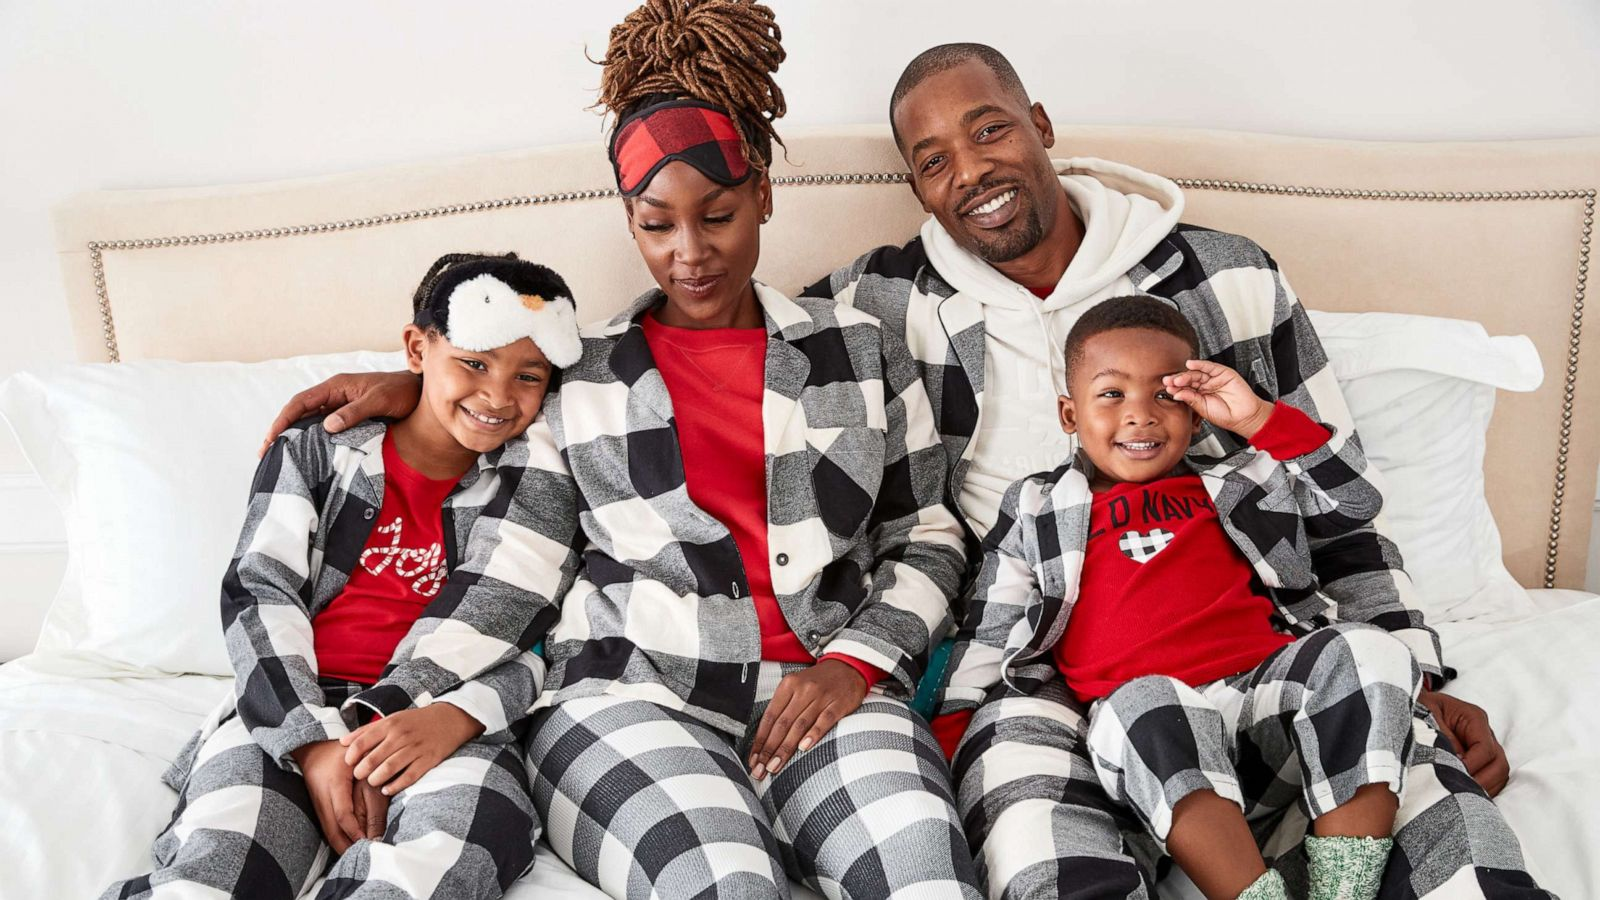 Shop The Cutest Matching Christmas Pajamas In Time For The Holidays Gma